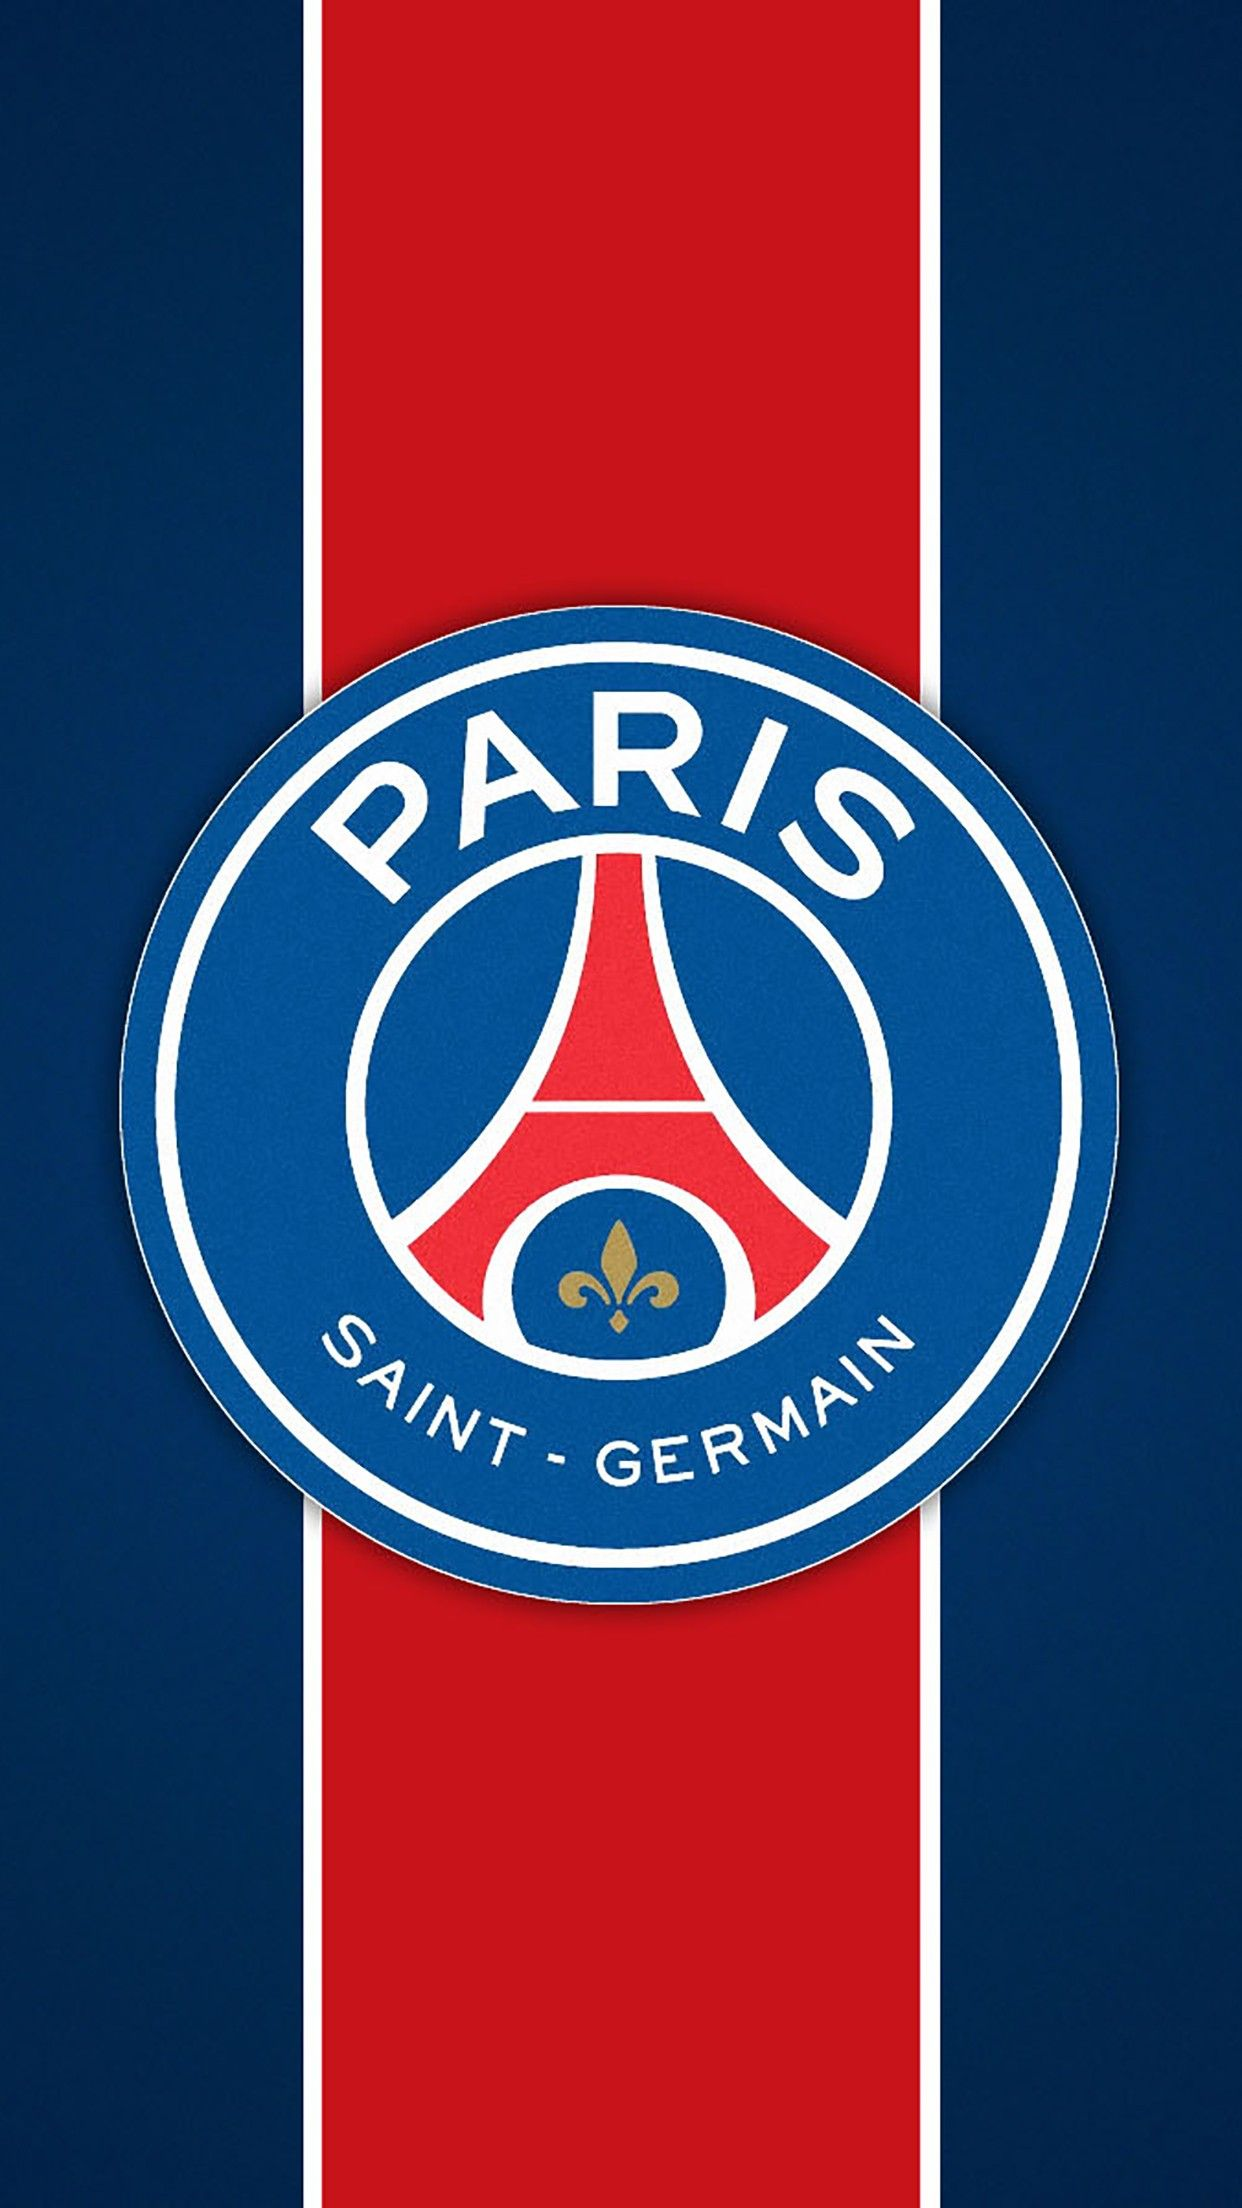 Psg Wallpaper For Mobile Wallpaper Psg Football Wallpaper Mobile Wallpaper